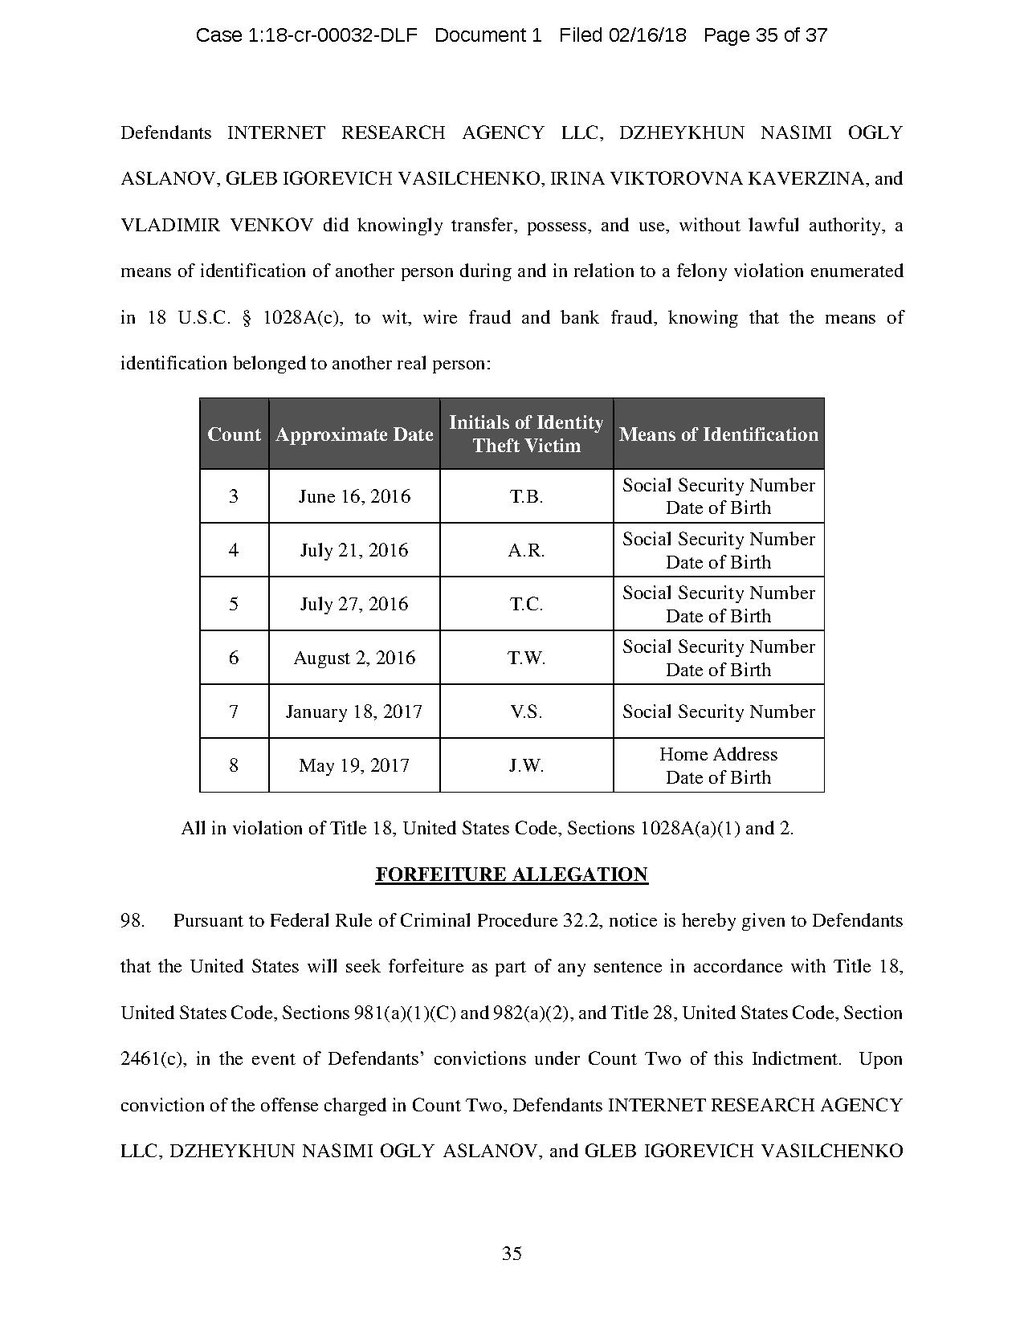 Page:Internet Research Agency Indictment Feb 2018 with text.pdf/35 ...